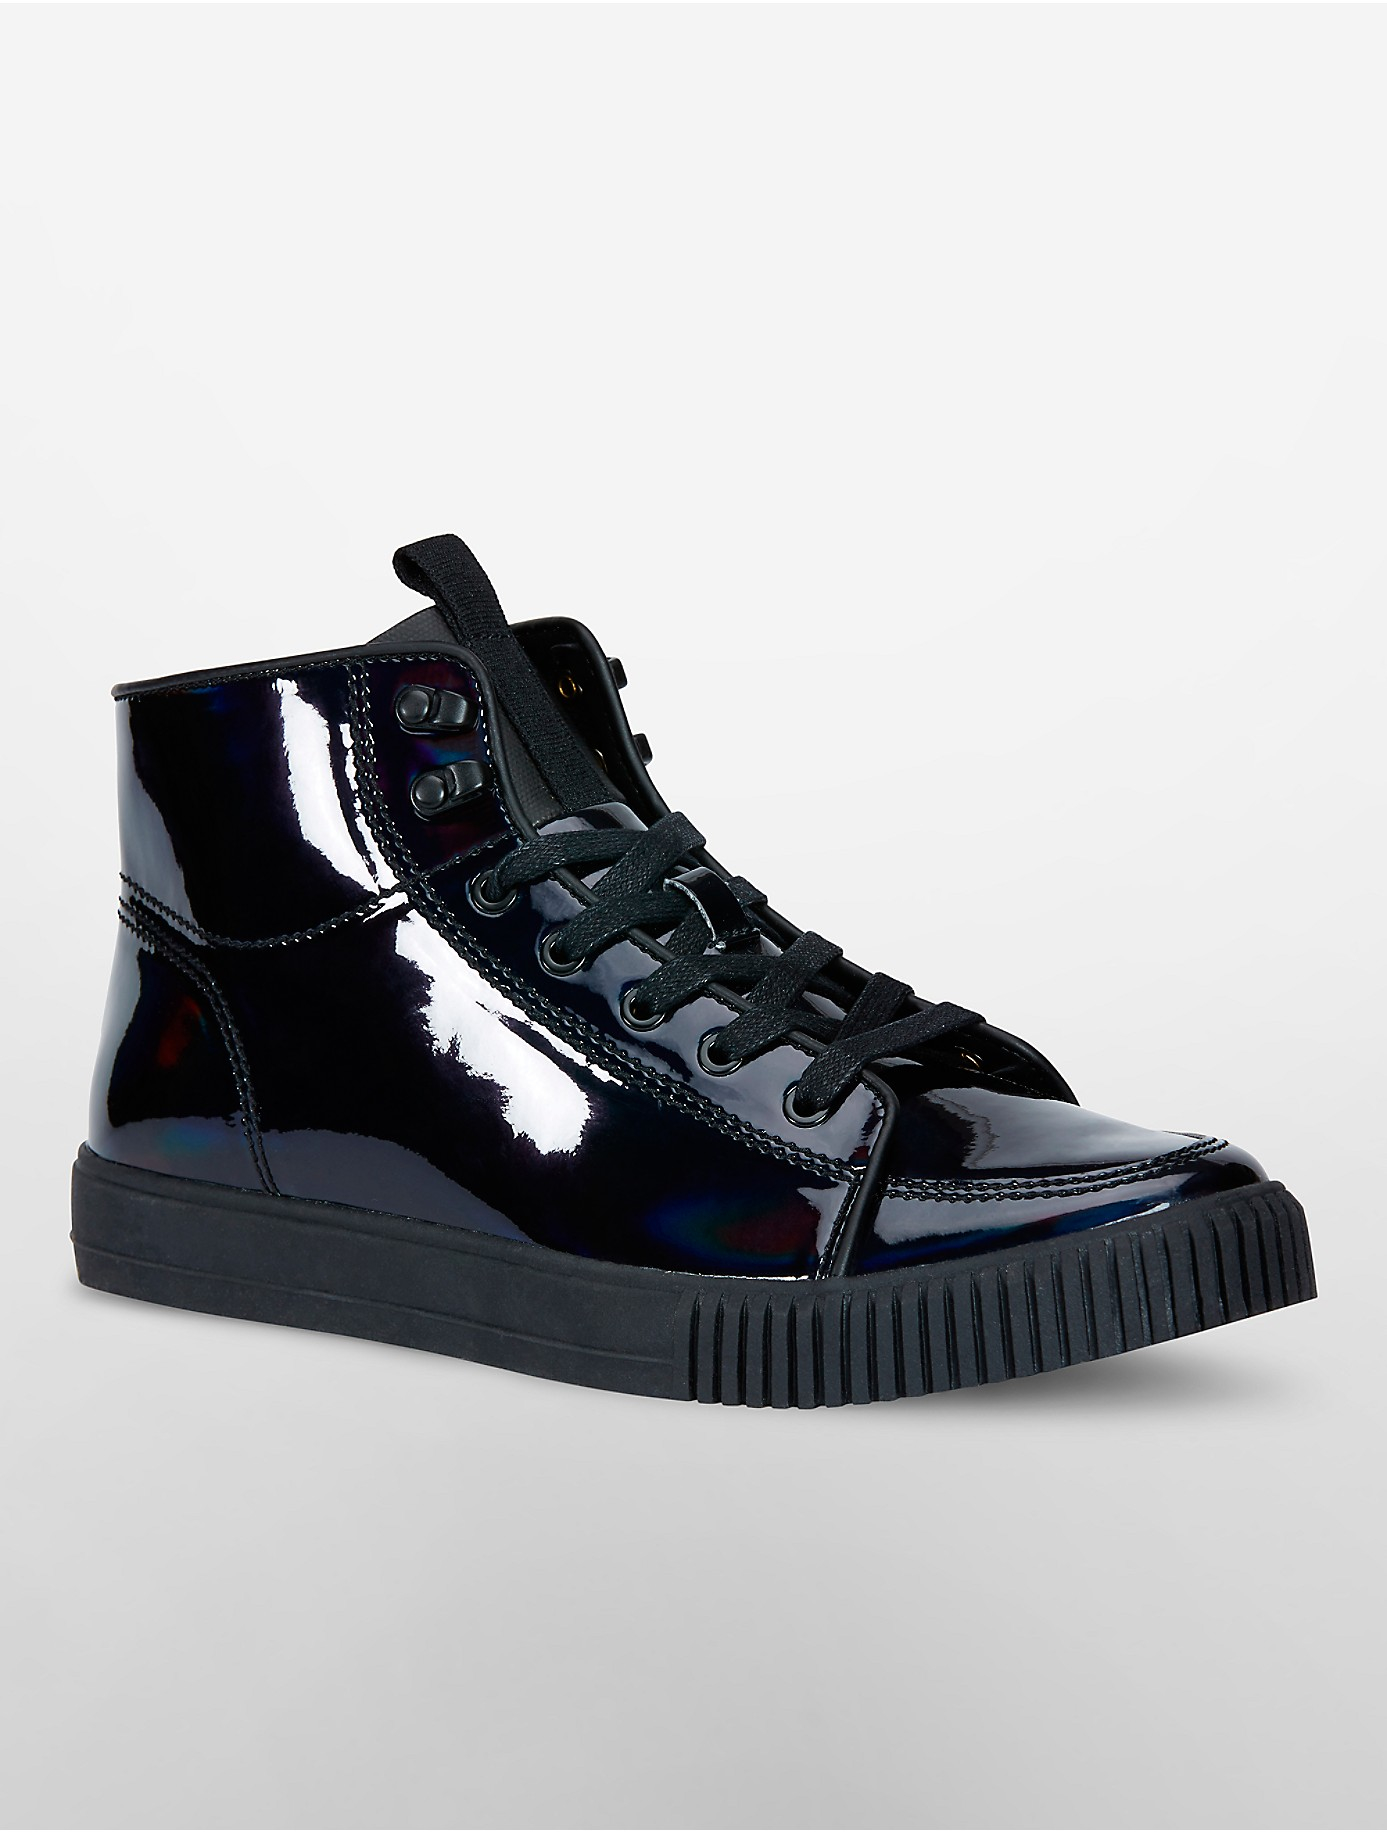 calvin klein jeans jenson iridescent canvas high top sneakers in black lyst. Black Bedroom Furniture Sets. Home Design Ideas